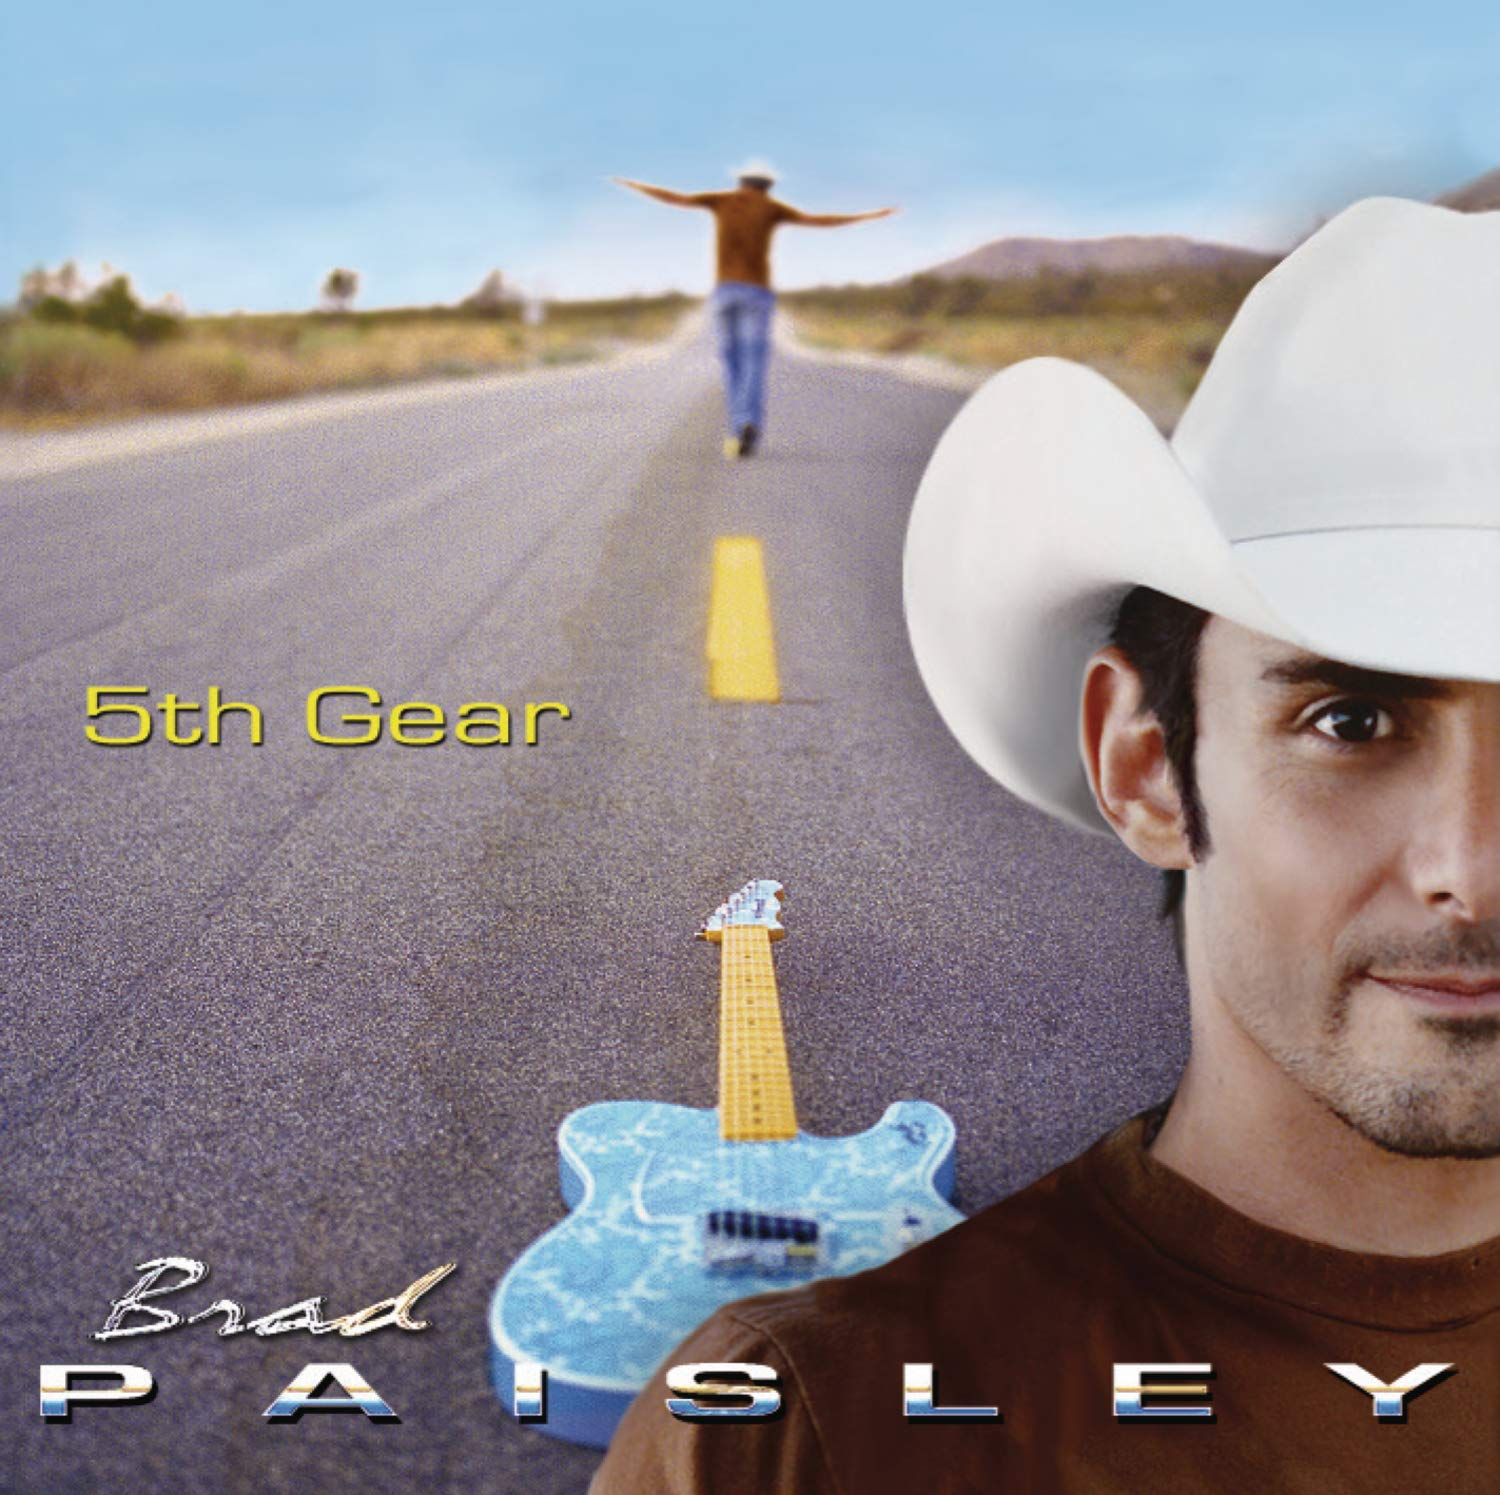 Brad Paisley, 5th Gear